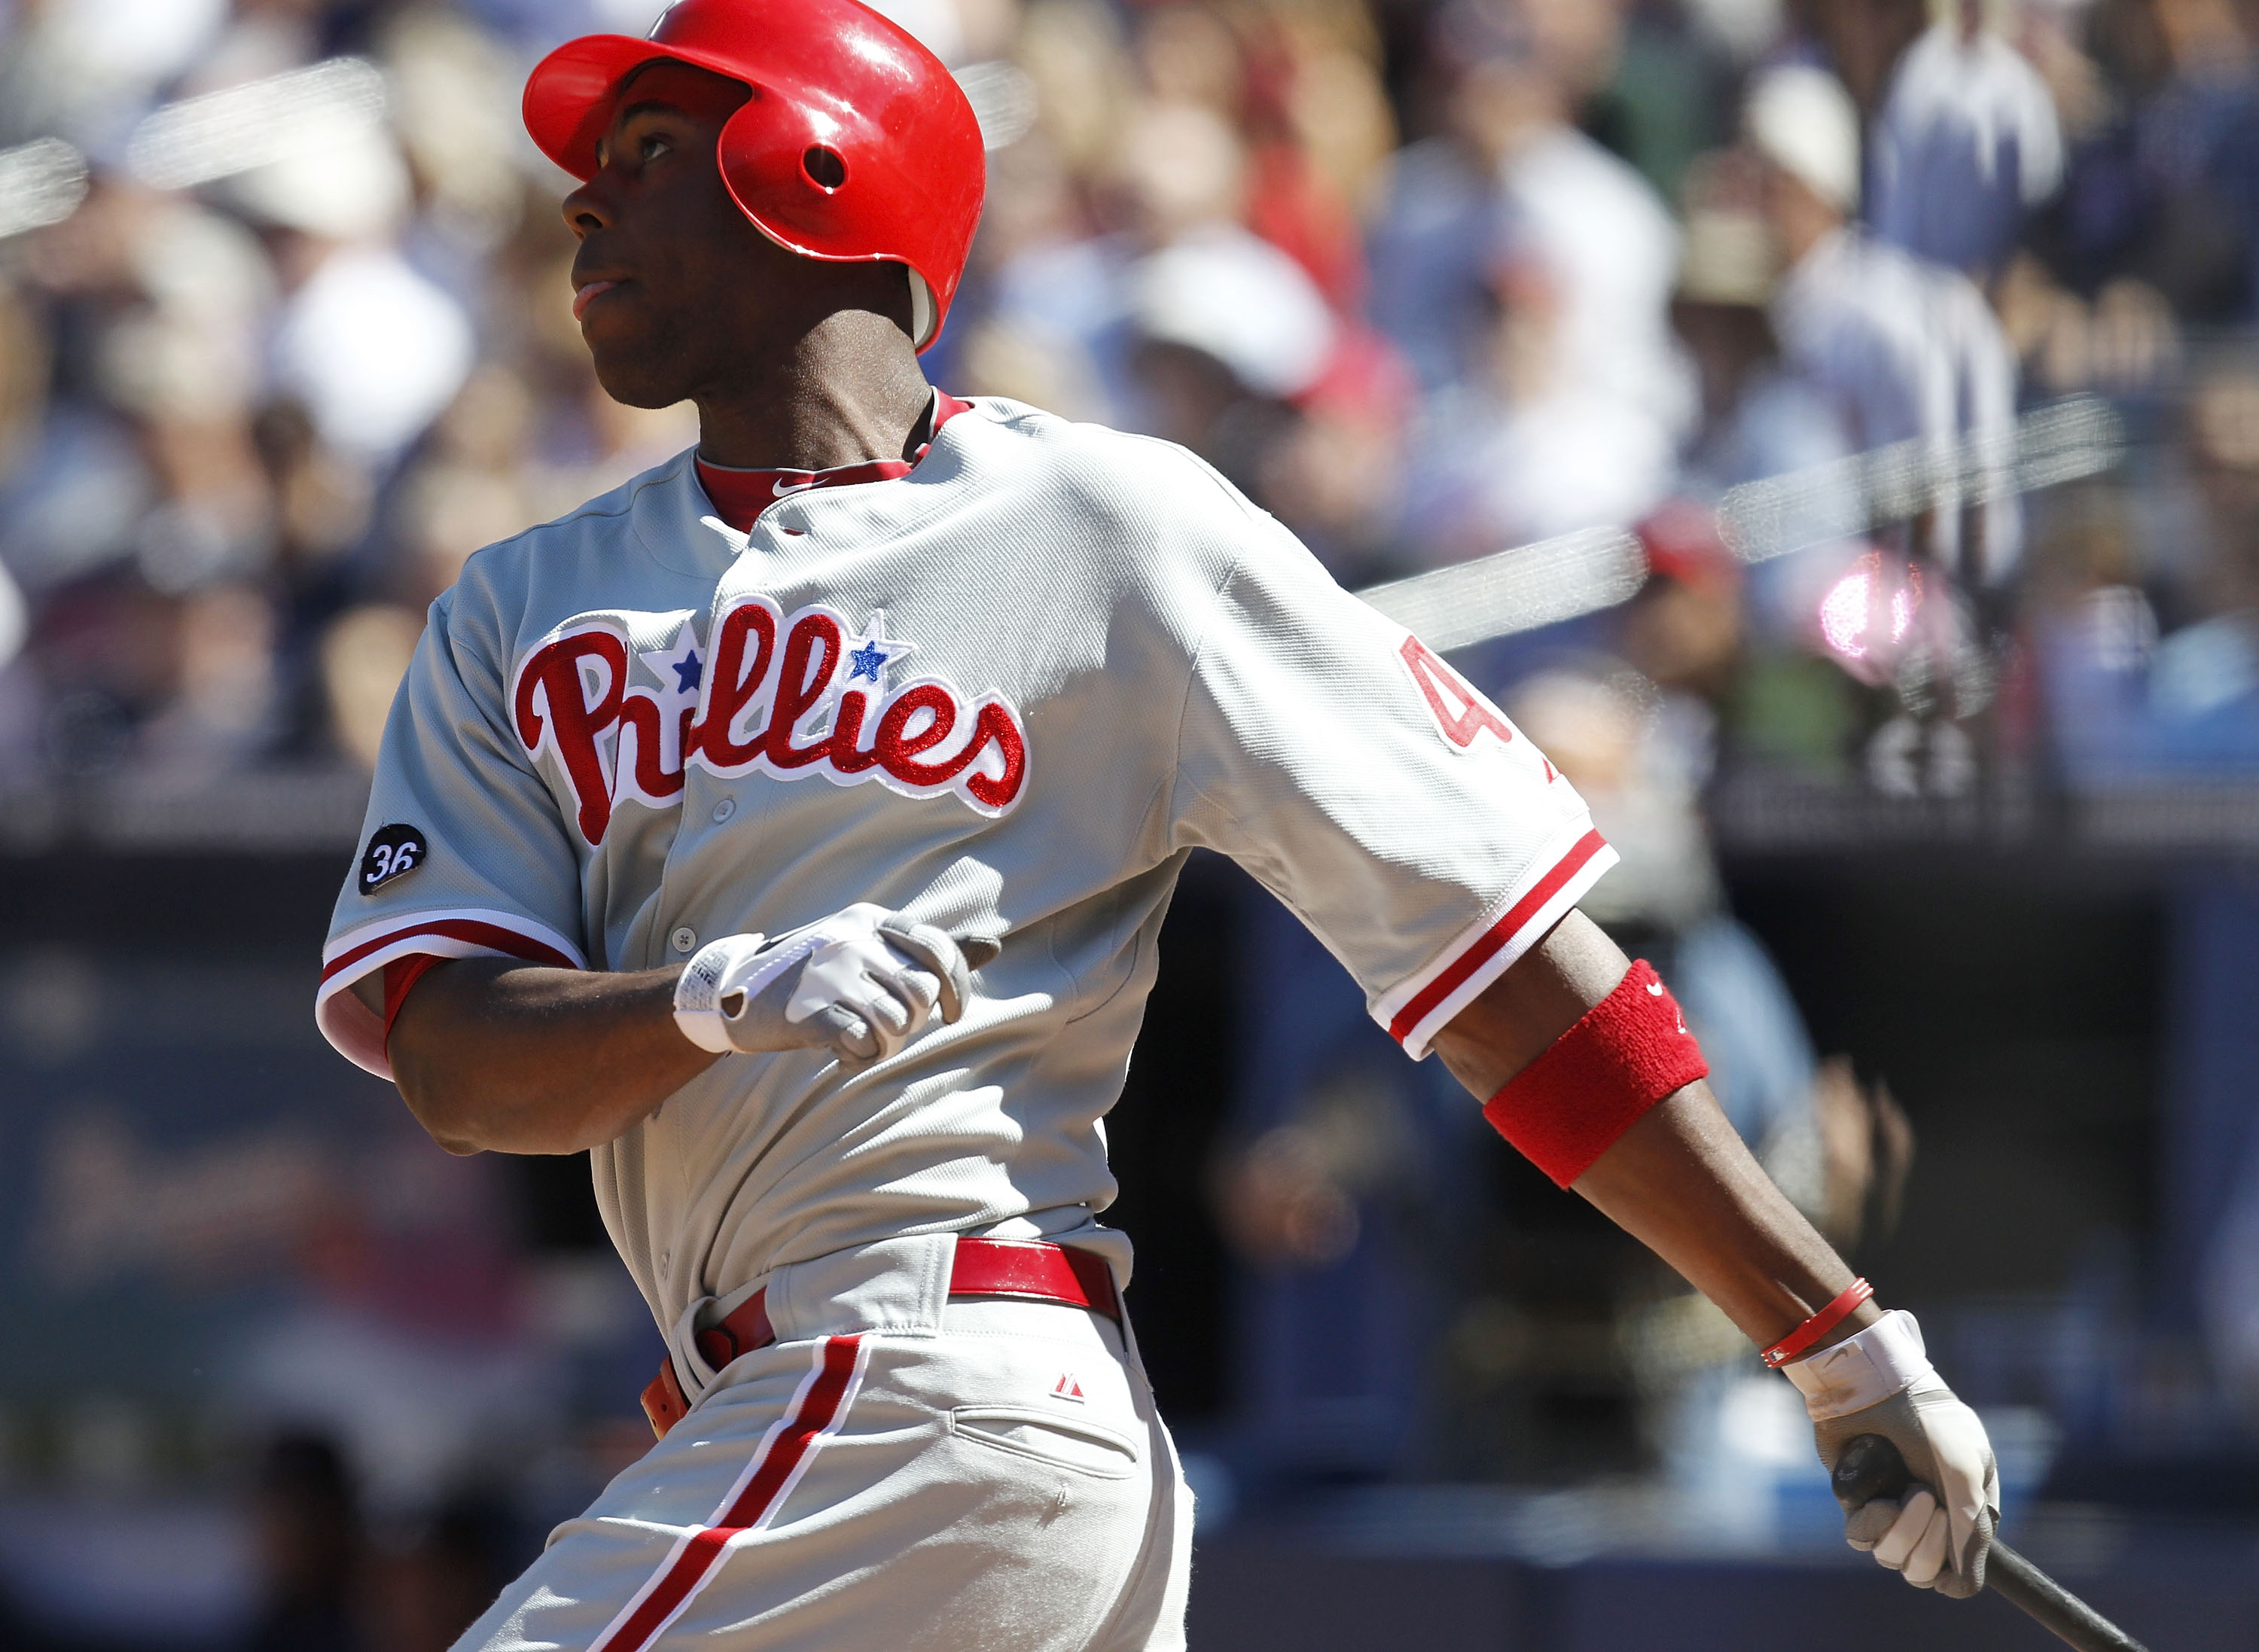 ATLANTA - OCTOBER 3:  Outfielder John Mayberry #40 of the Philadelphia Phillies hits a two run pinch hit home run during the game against the Atlanta Braves at Turner Field on October 3, 2010 in Atlanta, Georgia. The Braves beat the Phillies 8-7.  (Photo